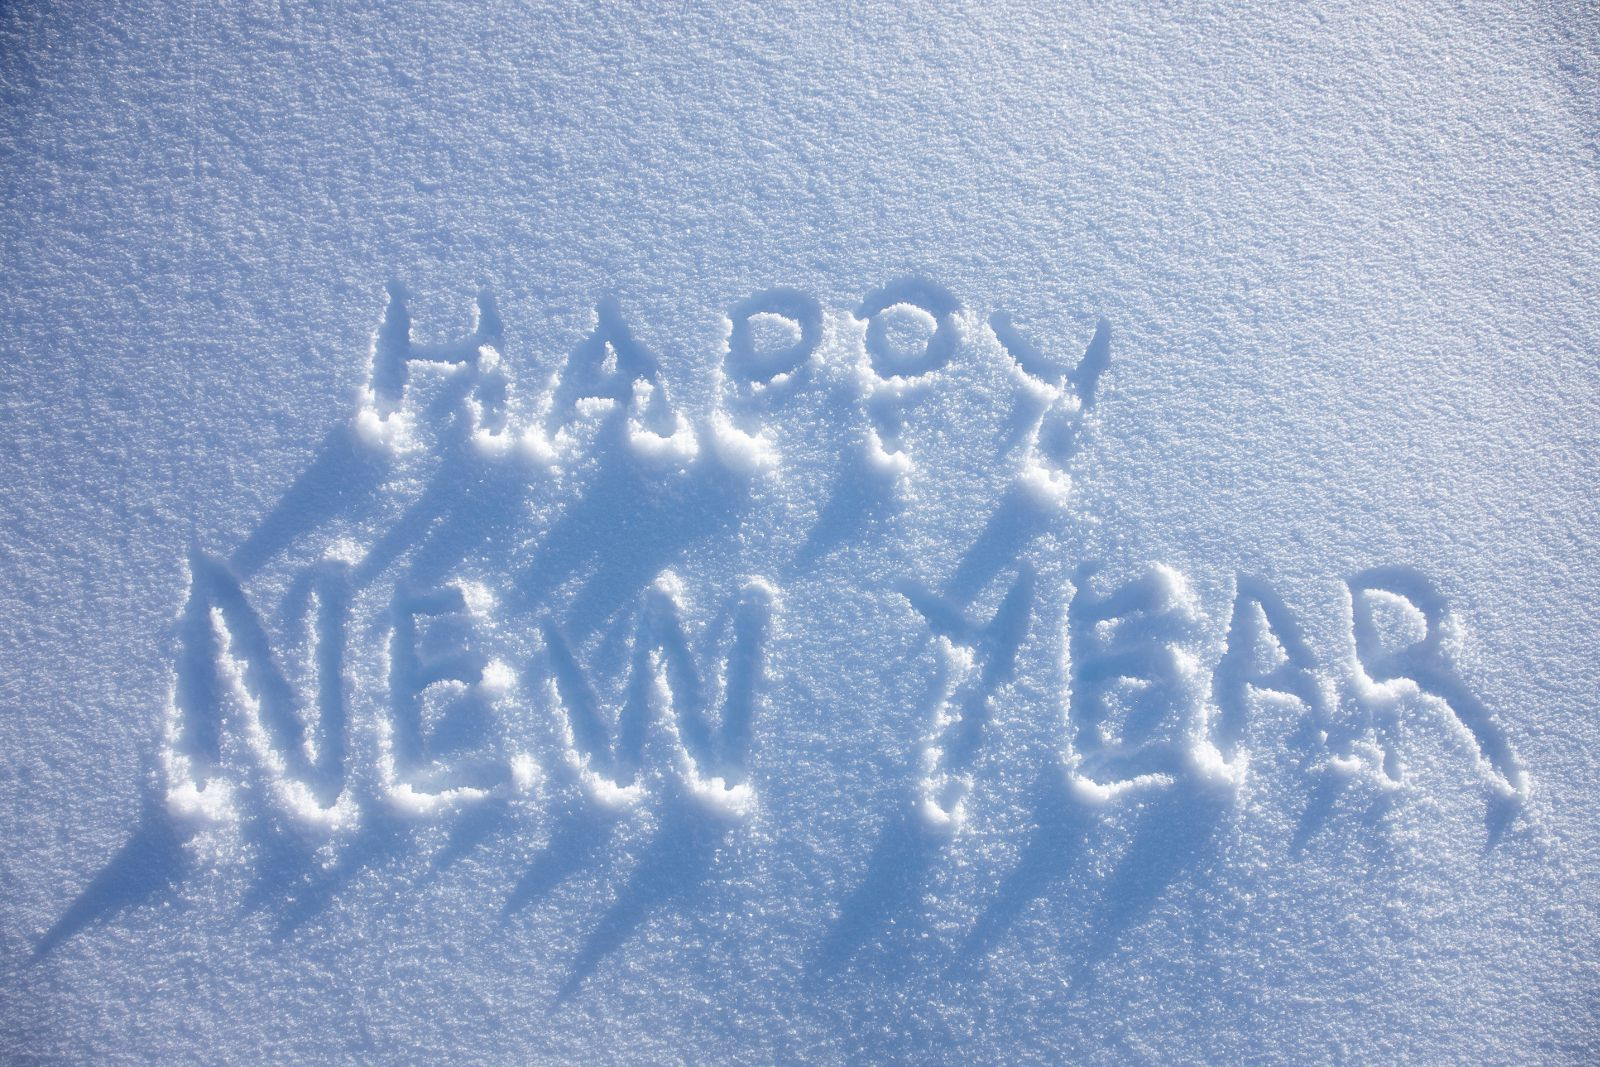 Free Happy New Year Images in HD